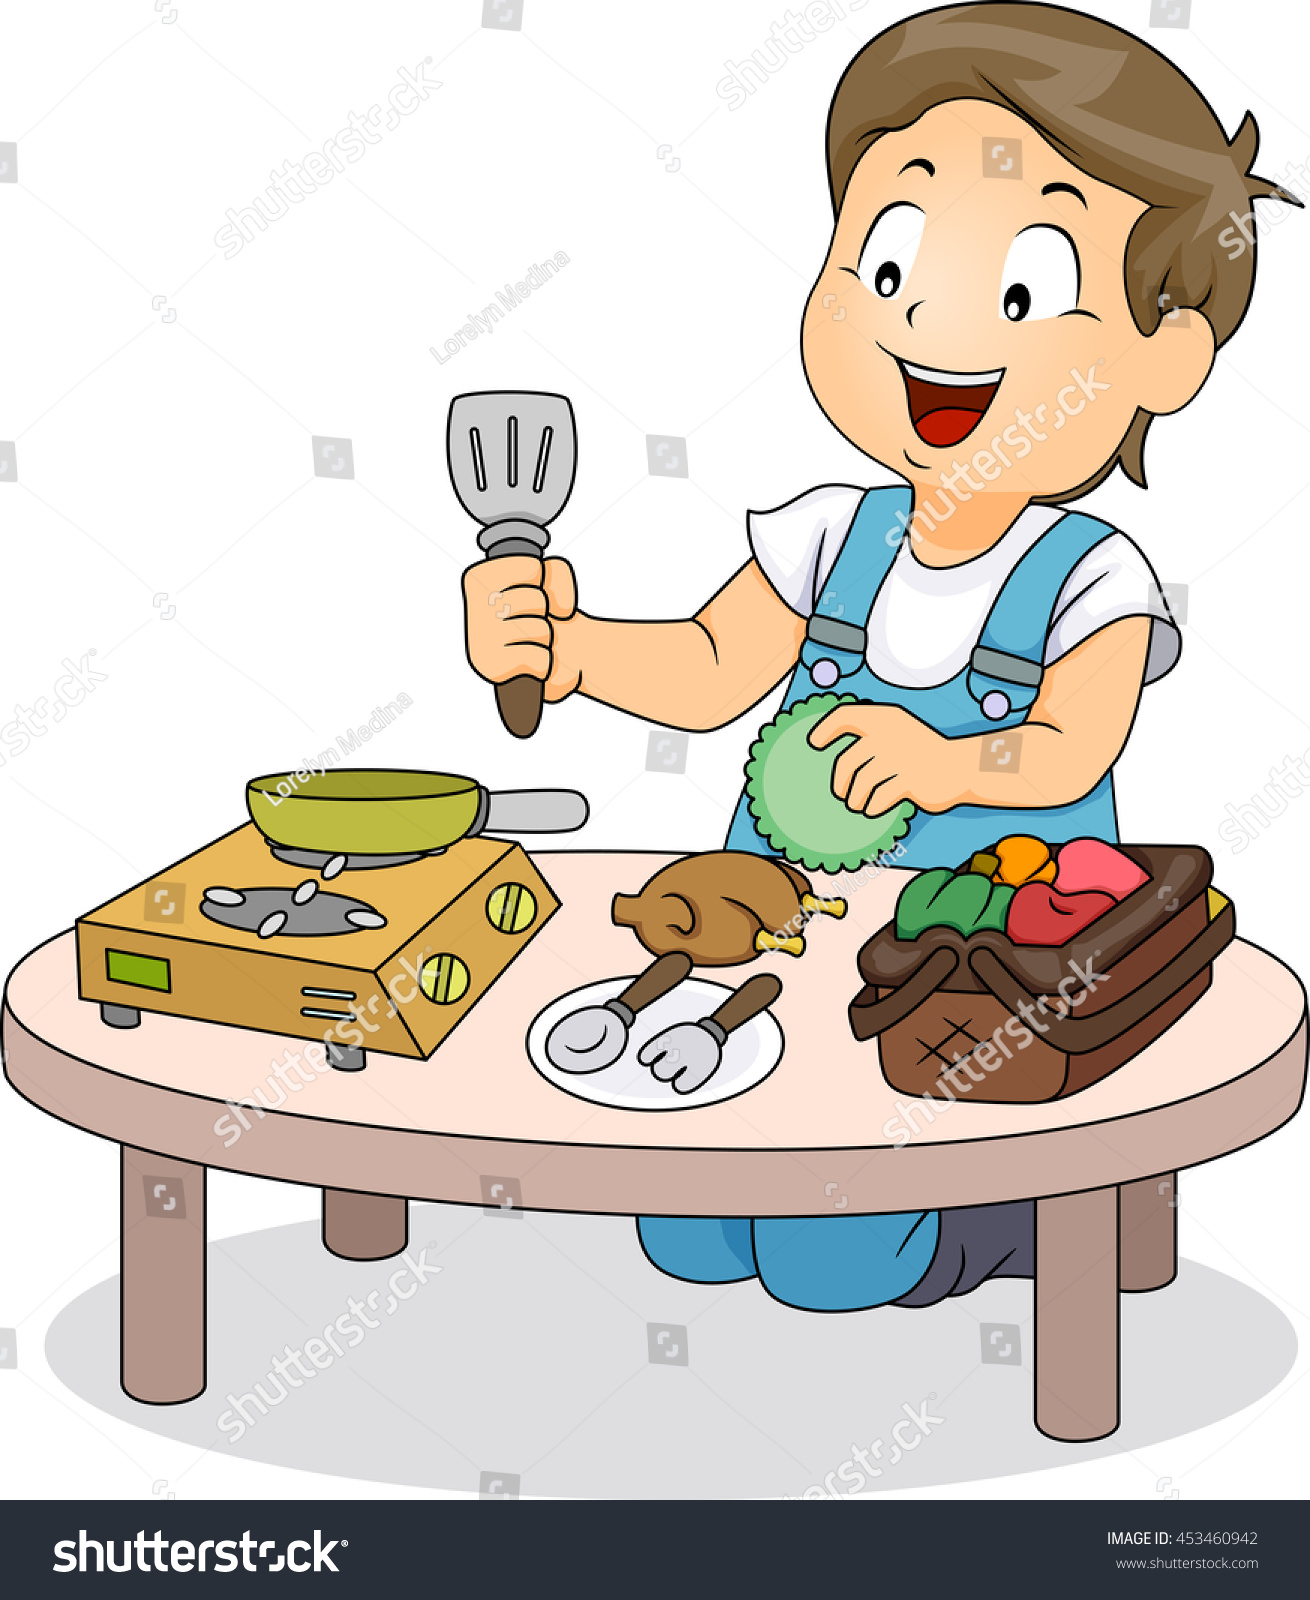 Play kitchen clip art - Illustration Of A Little Boy Playing With Mini Kitchen Utensils